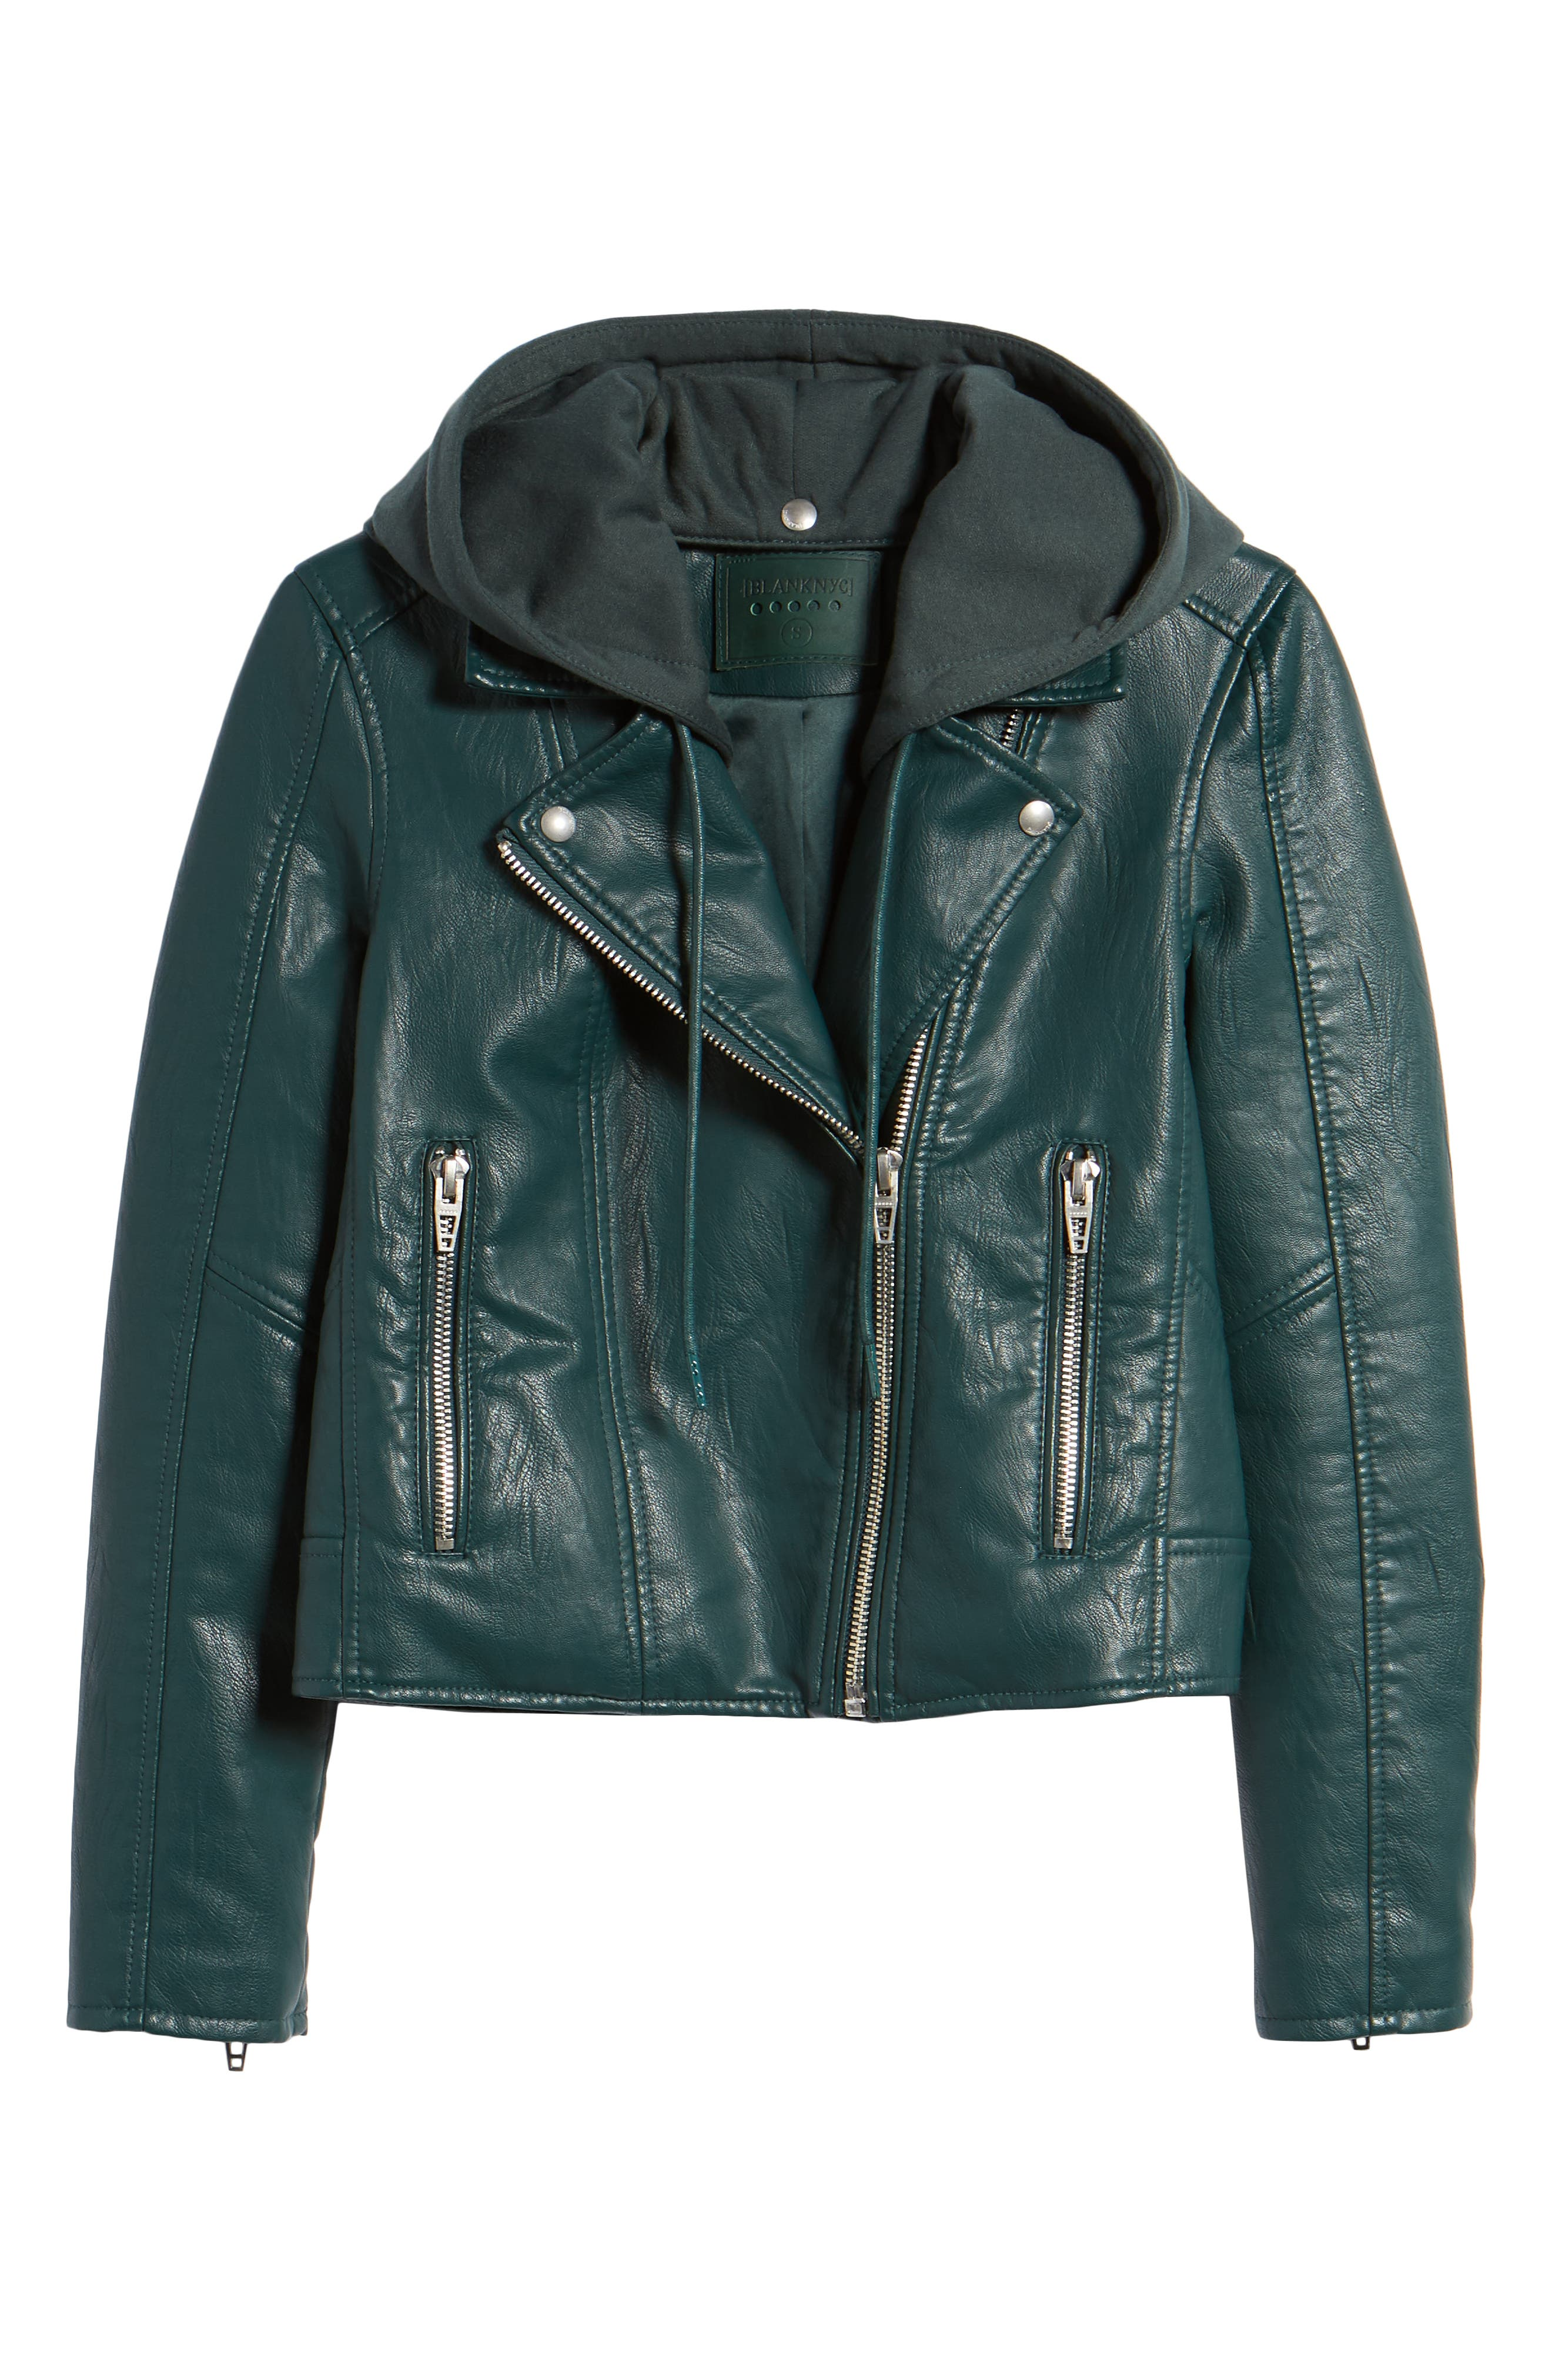 BLANKNYC, Meant to Be Moto Jacket with Removable Hood, Alternate thumbnail 6, color, EVERGREEN